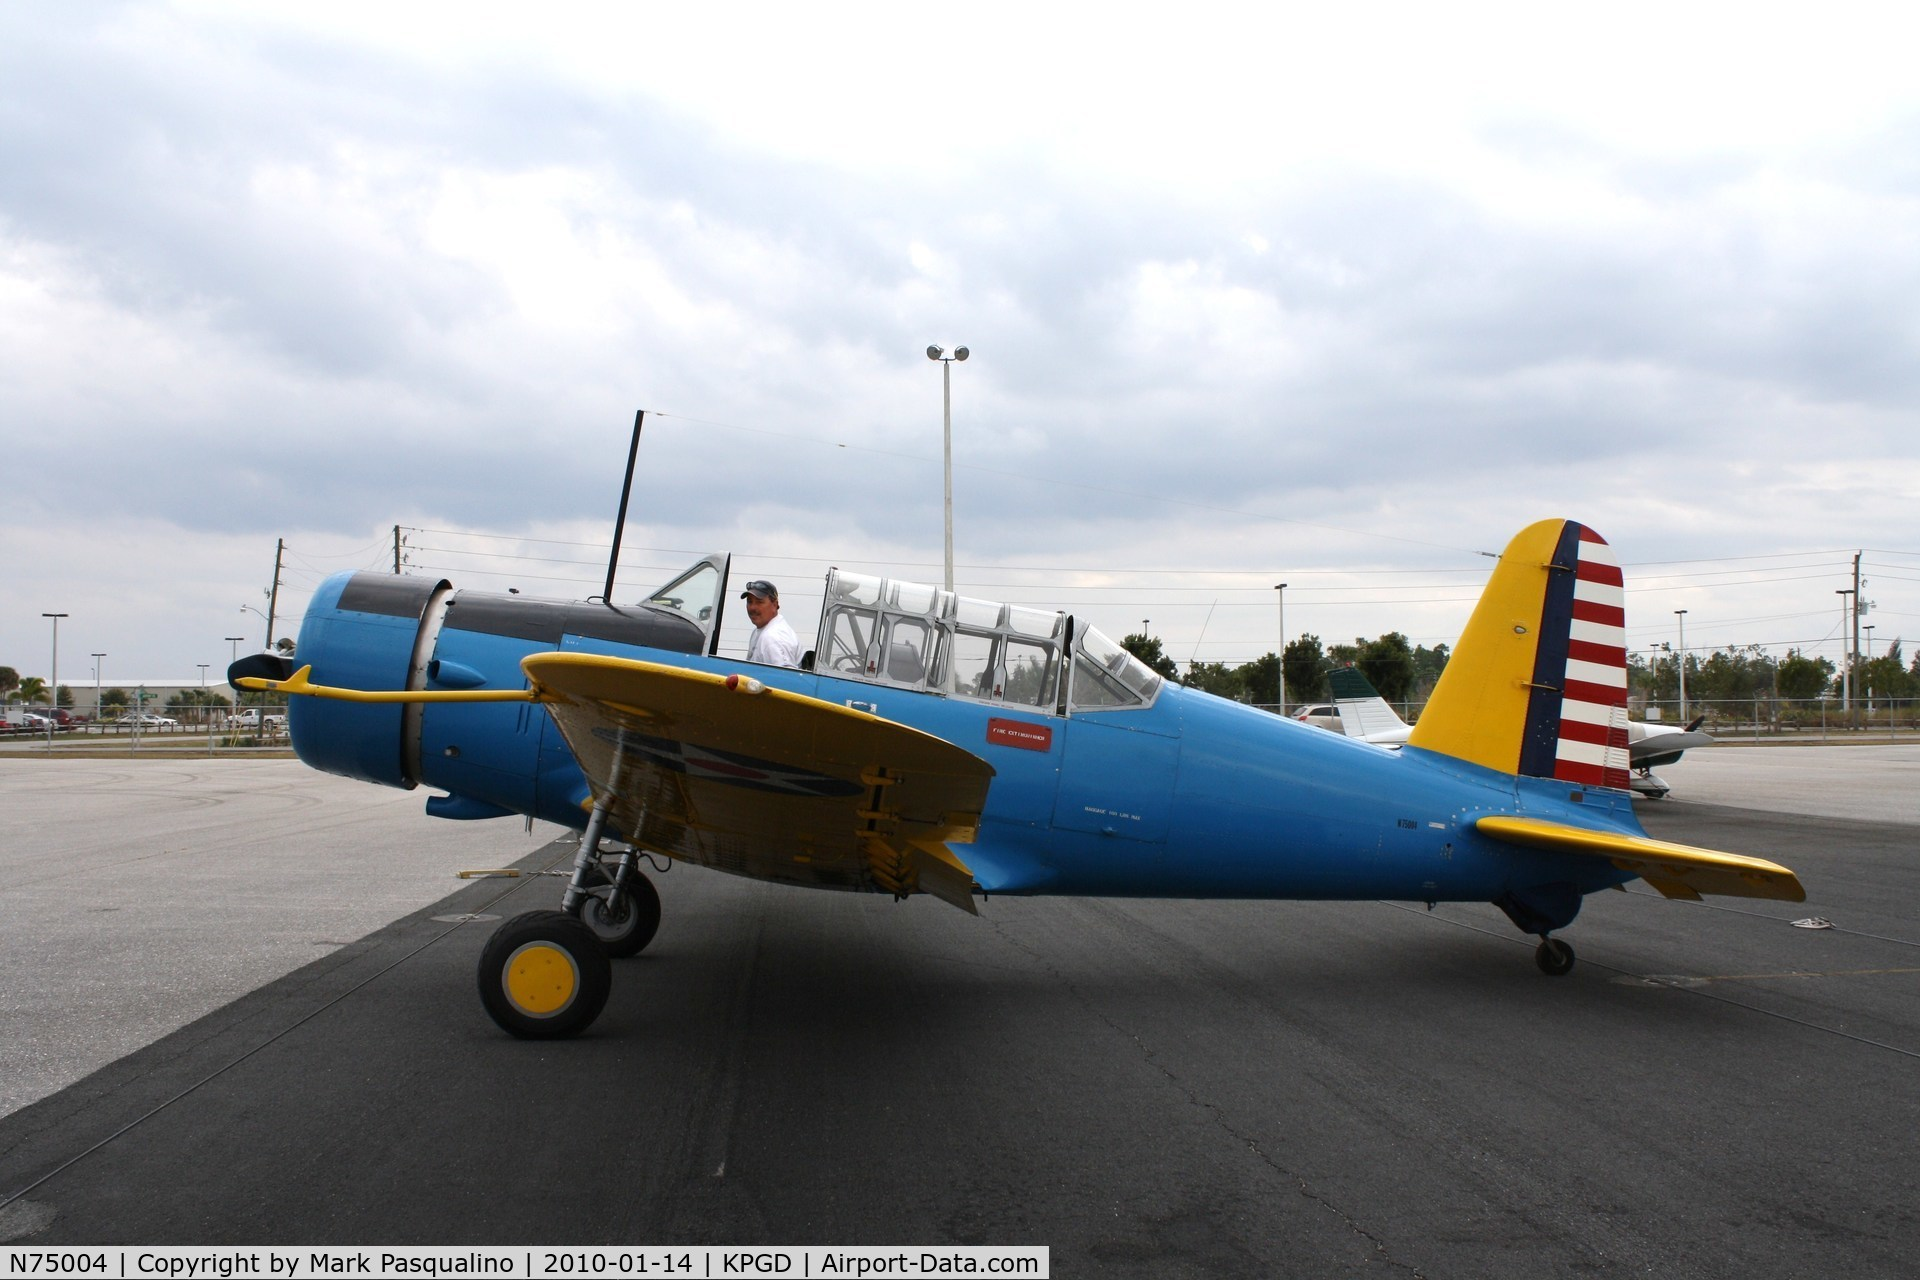 N75004, 1942 Convair BT-15 C/N 6720, Vultee BT-15